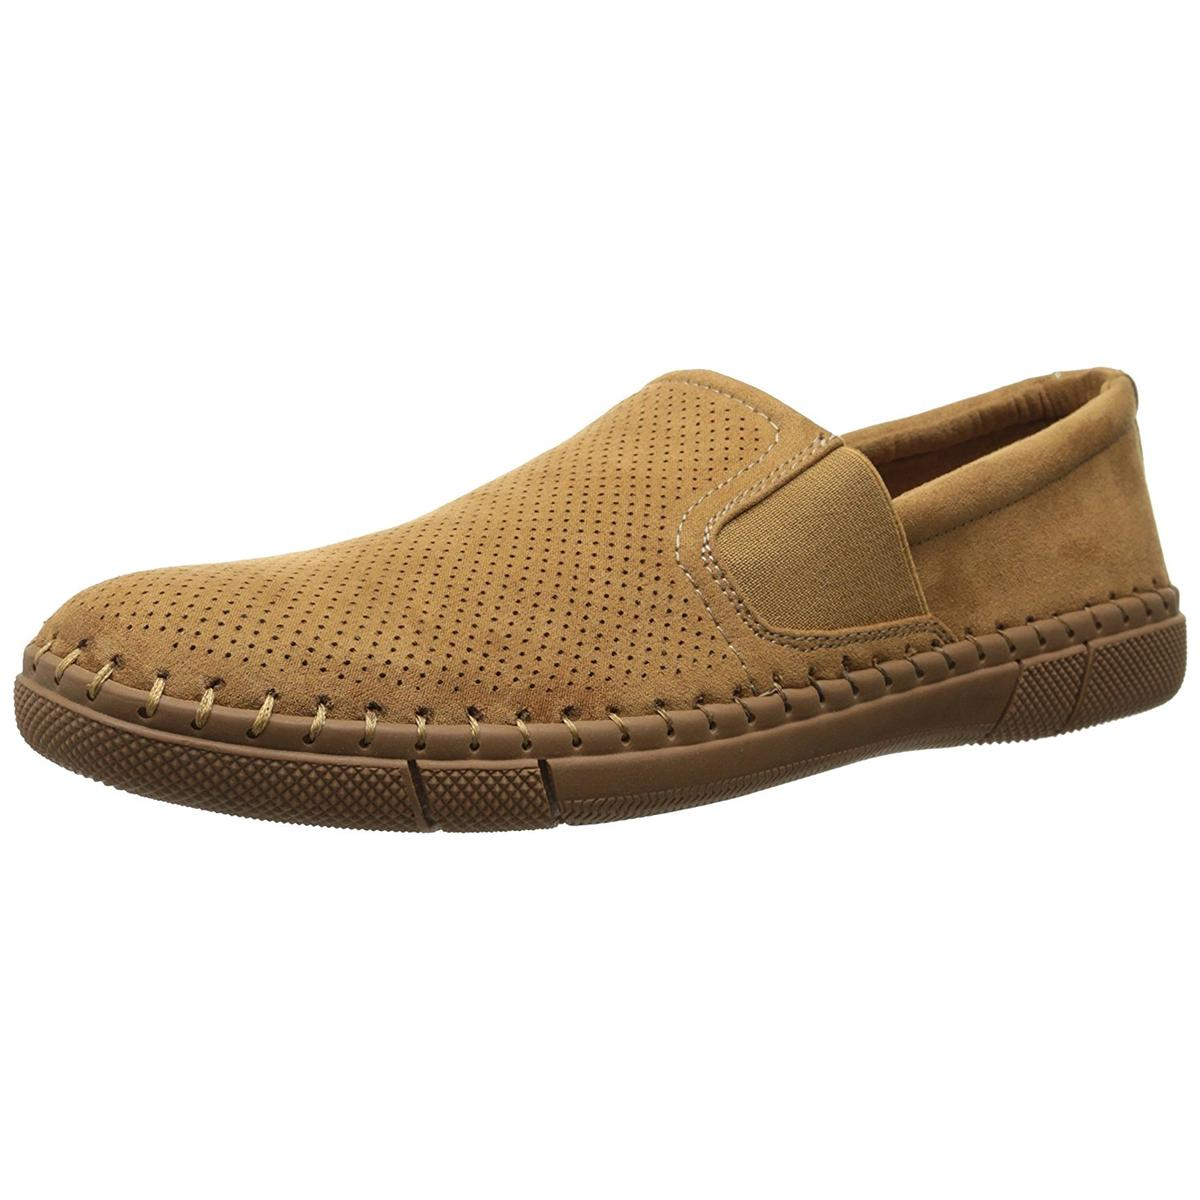 Robert Wayne Road on Men's Rust Suede Slip on Road Loafer 8M ebb5e2